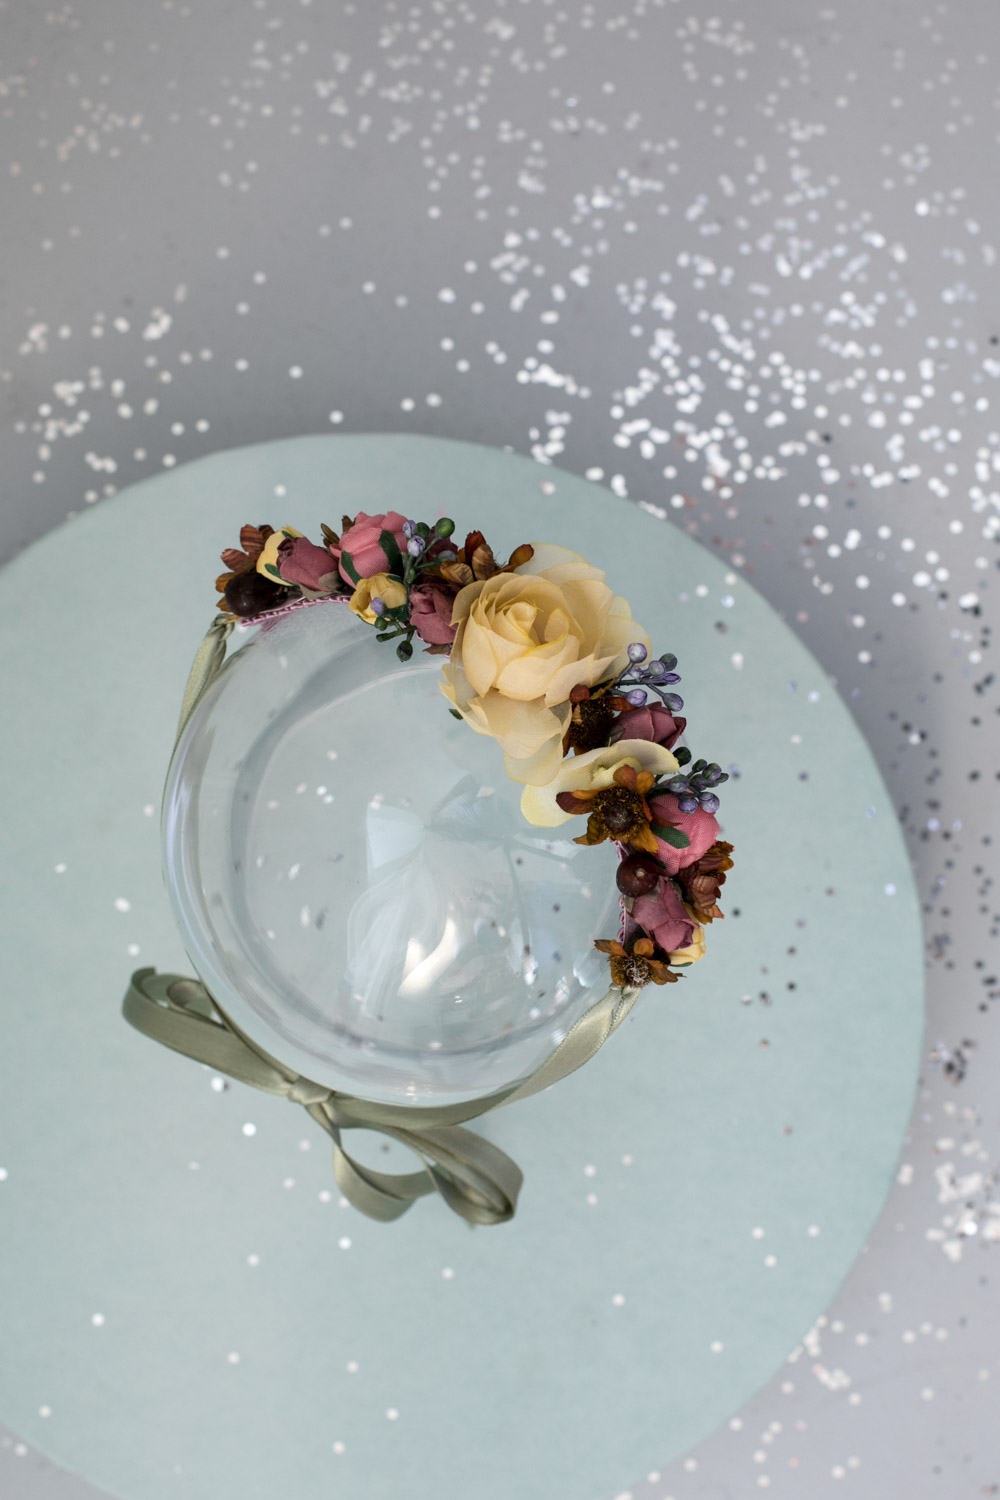 We-Are-Flowergirls_Stardust-Collection_Productphotos-by-Die-Ida_[IMG_5712].jpg